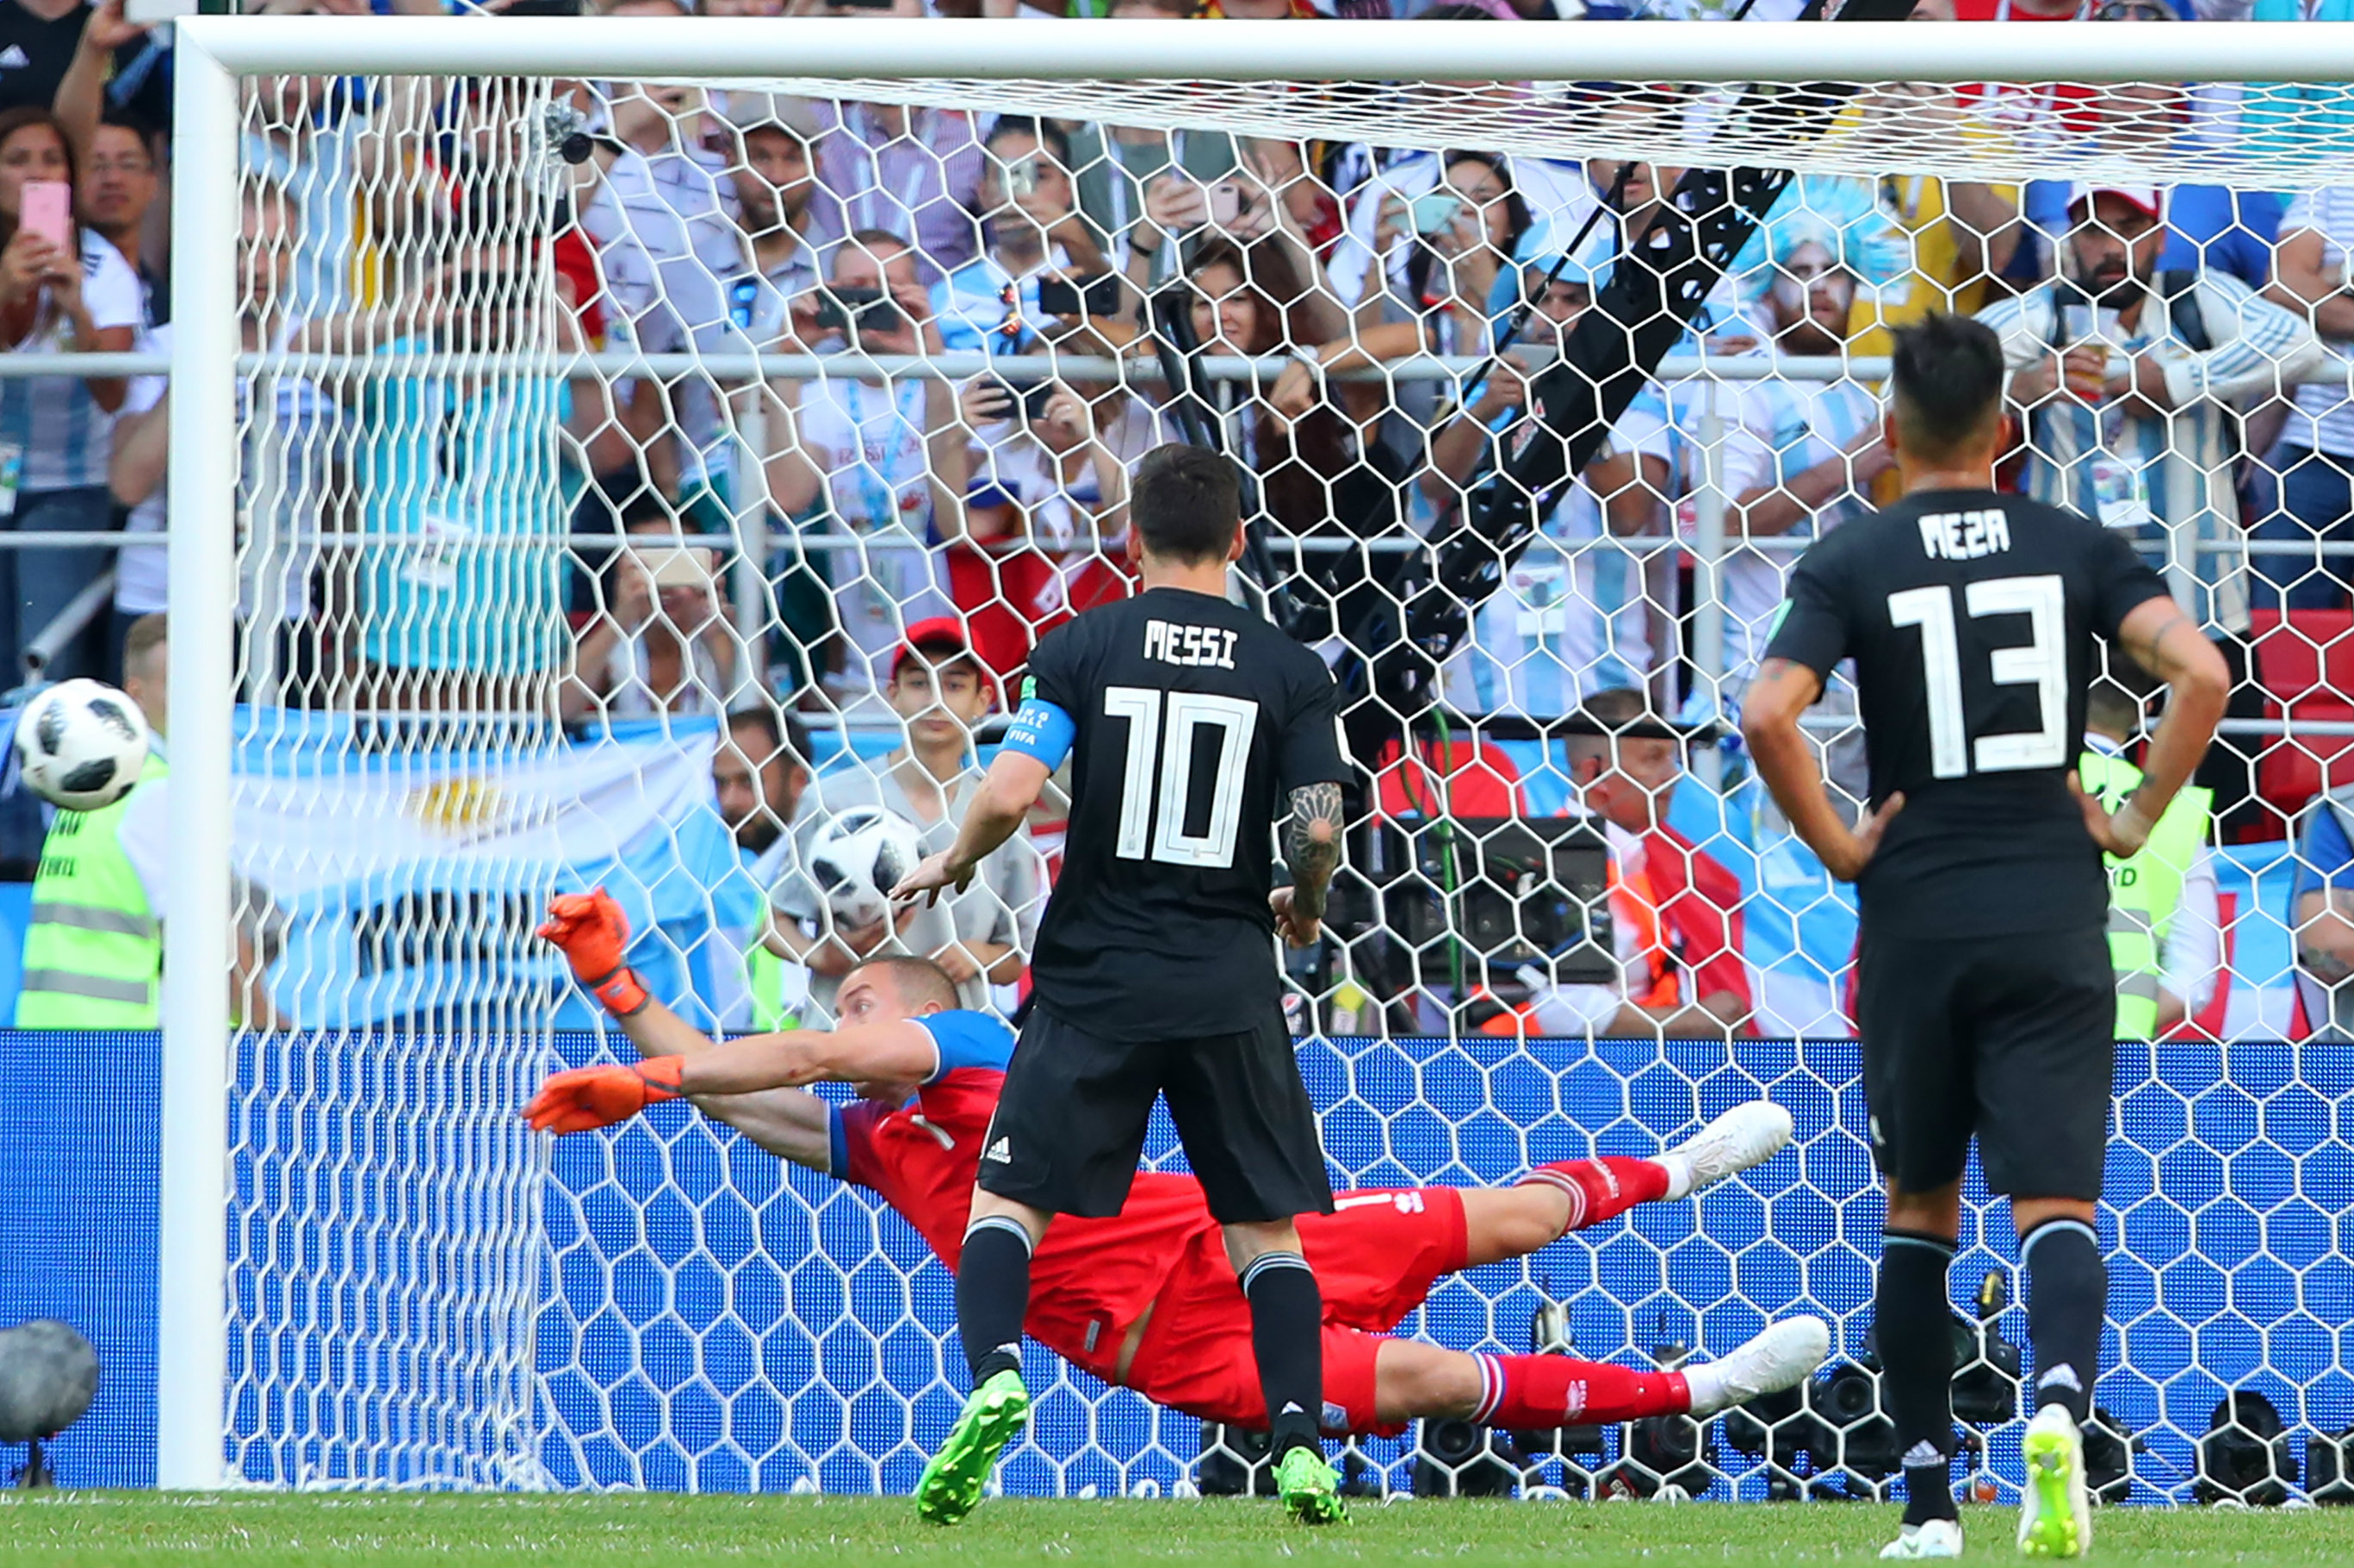 Iceland keeper Hannes Thor Halldorsson denies Lionel Messi's penalty.